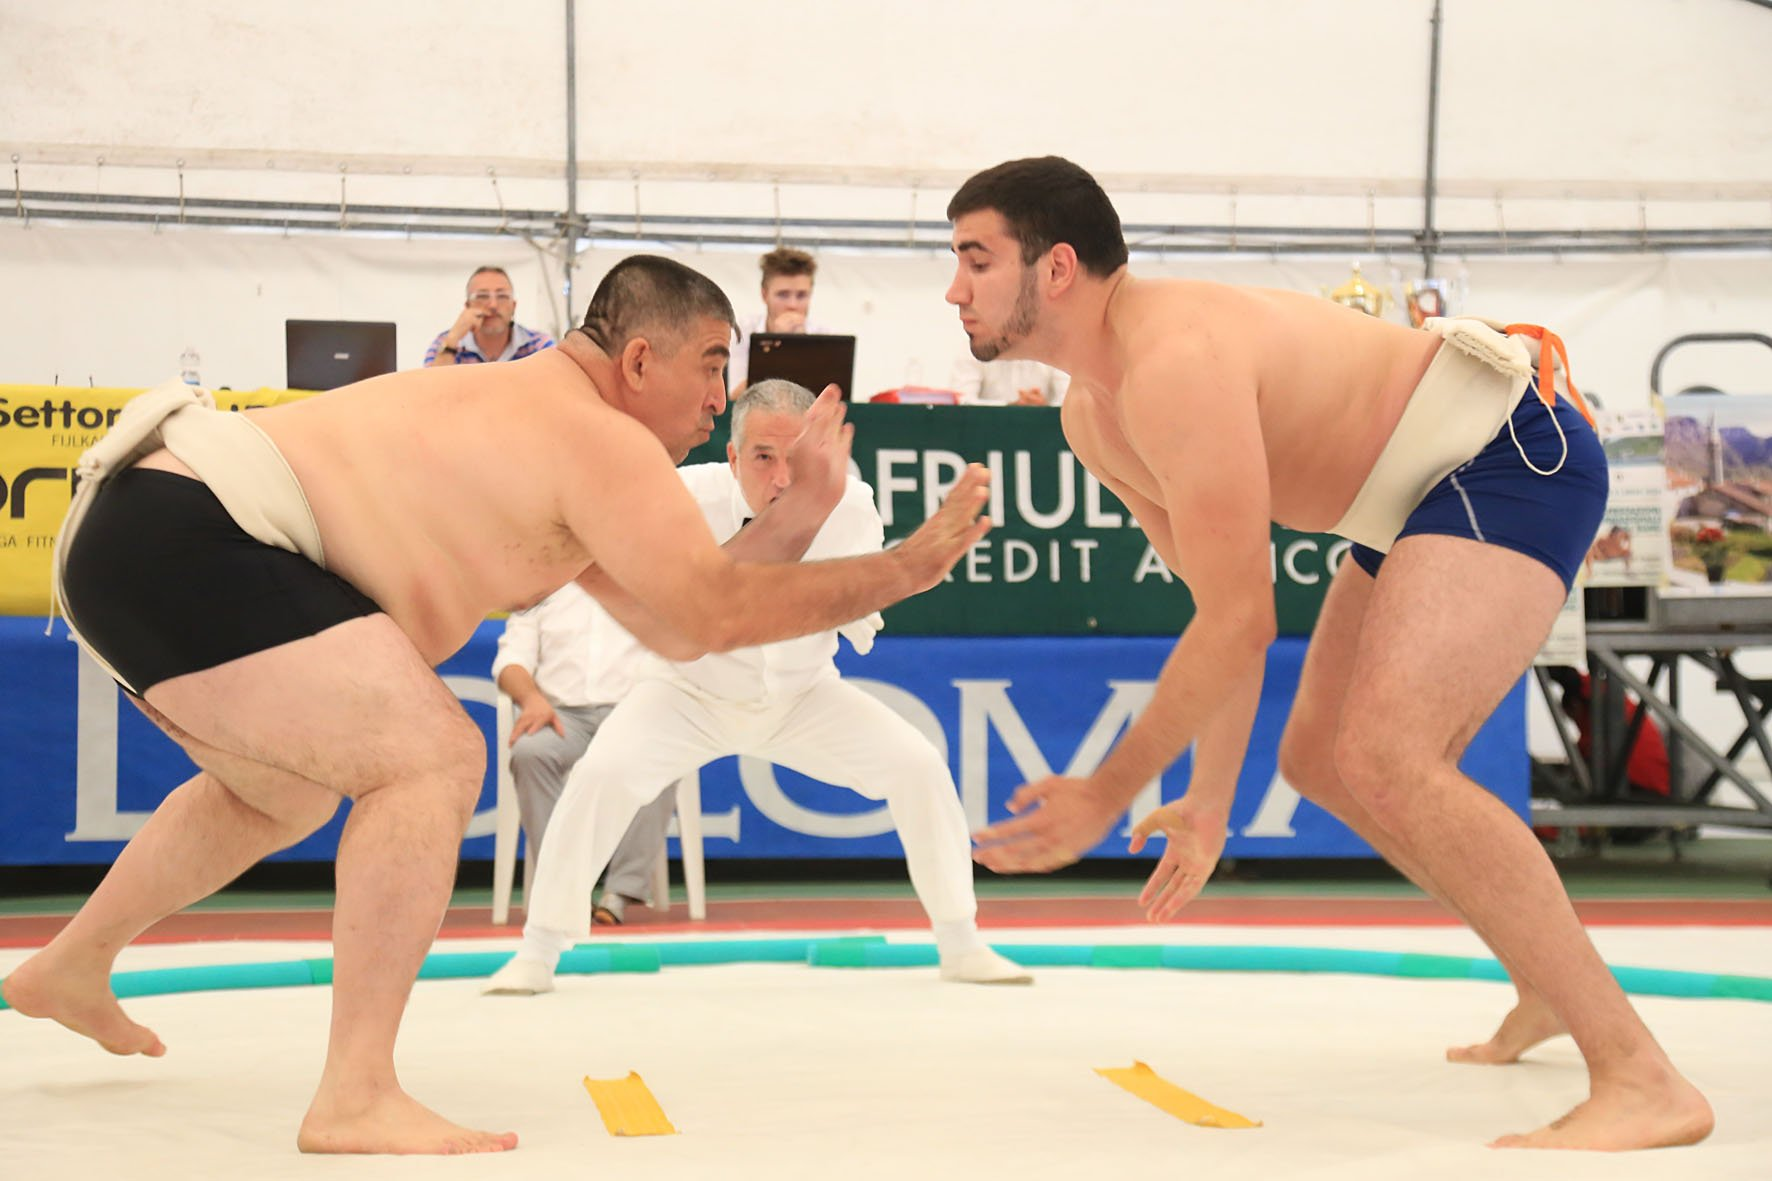 - In the famous Japanese wrestling the winner is the one, who is able to push one's opponent out of the arena or make him touch the ground with any part of the body other than feet.